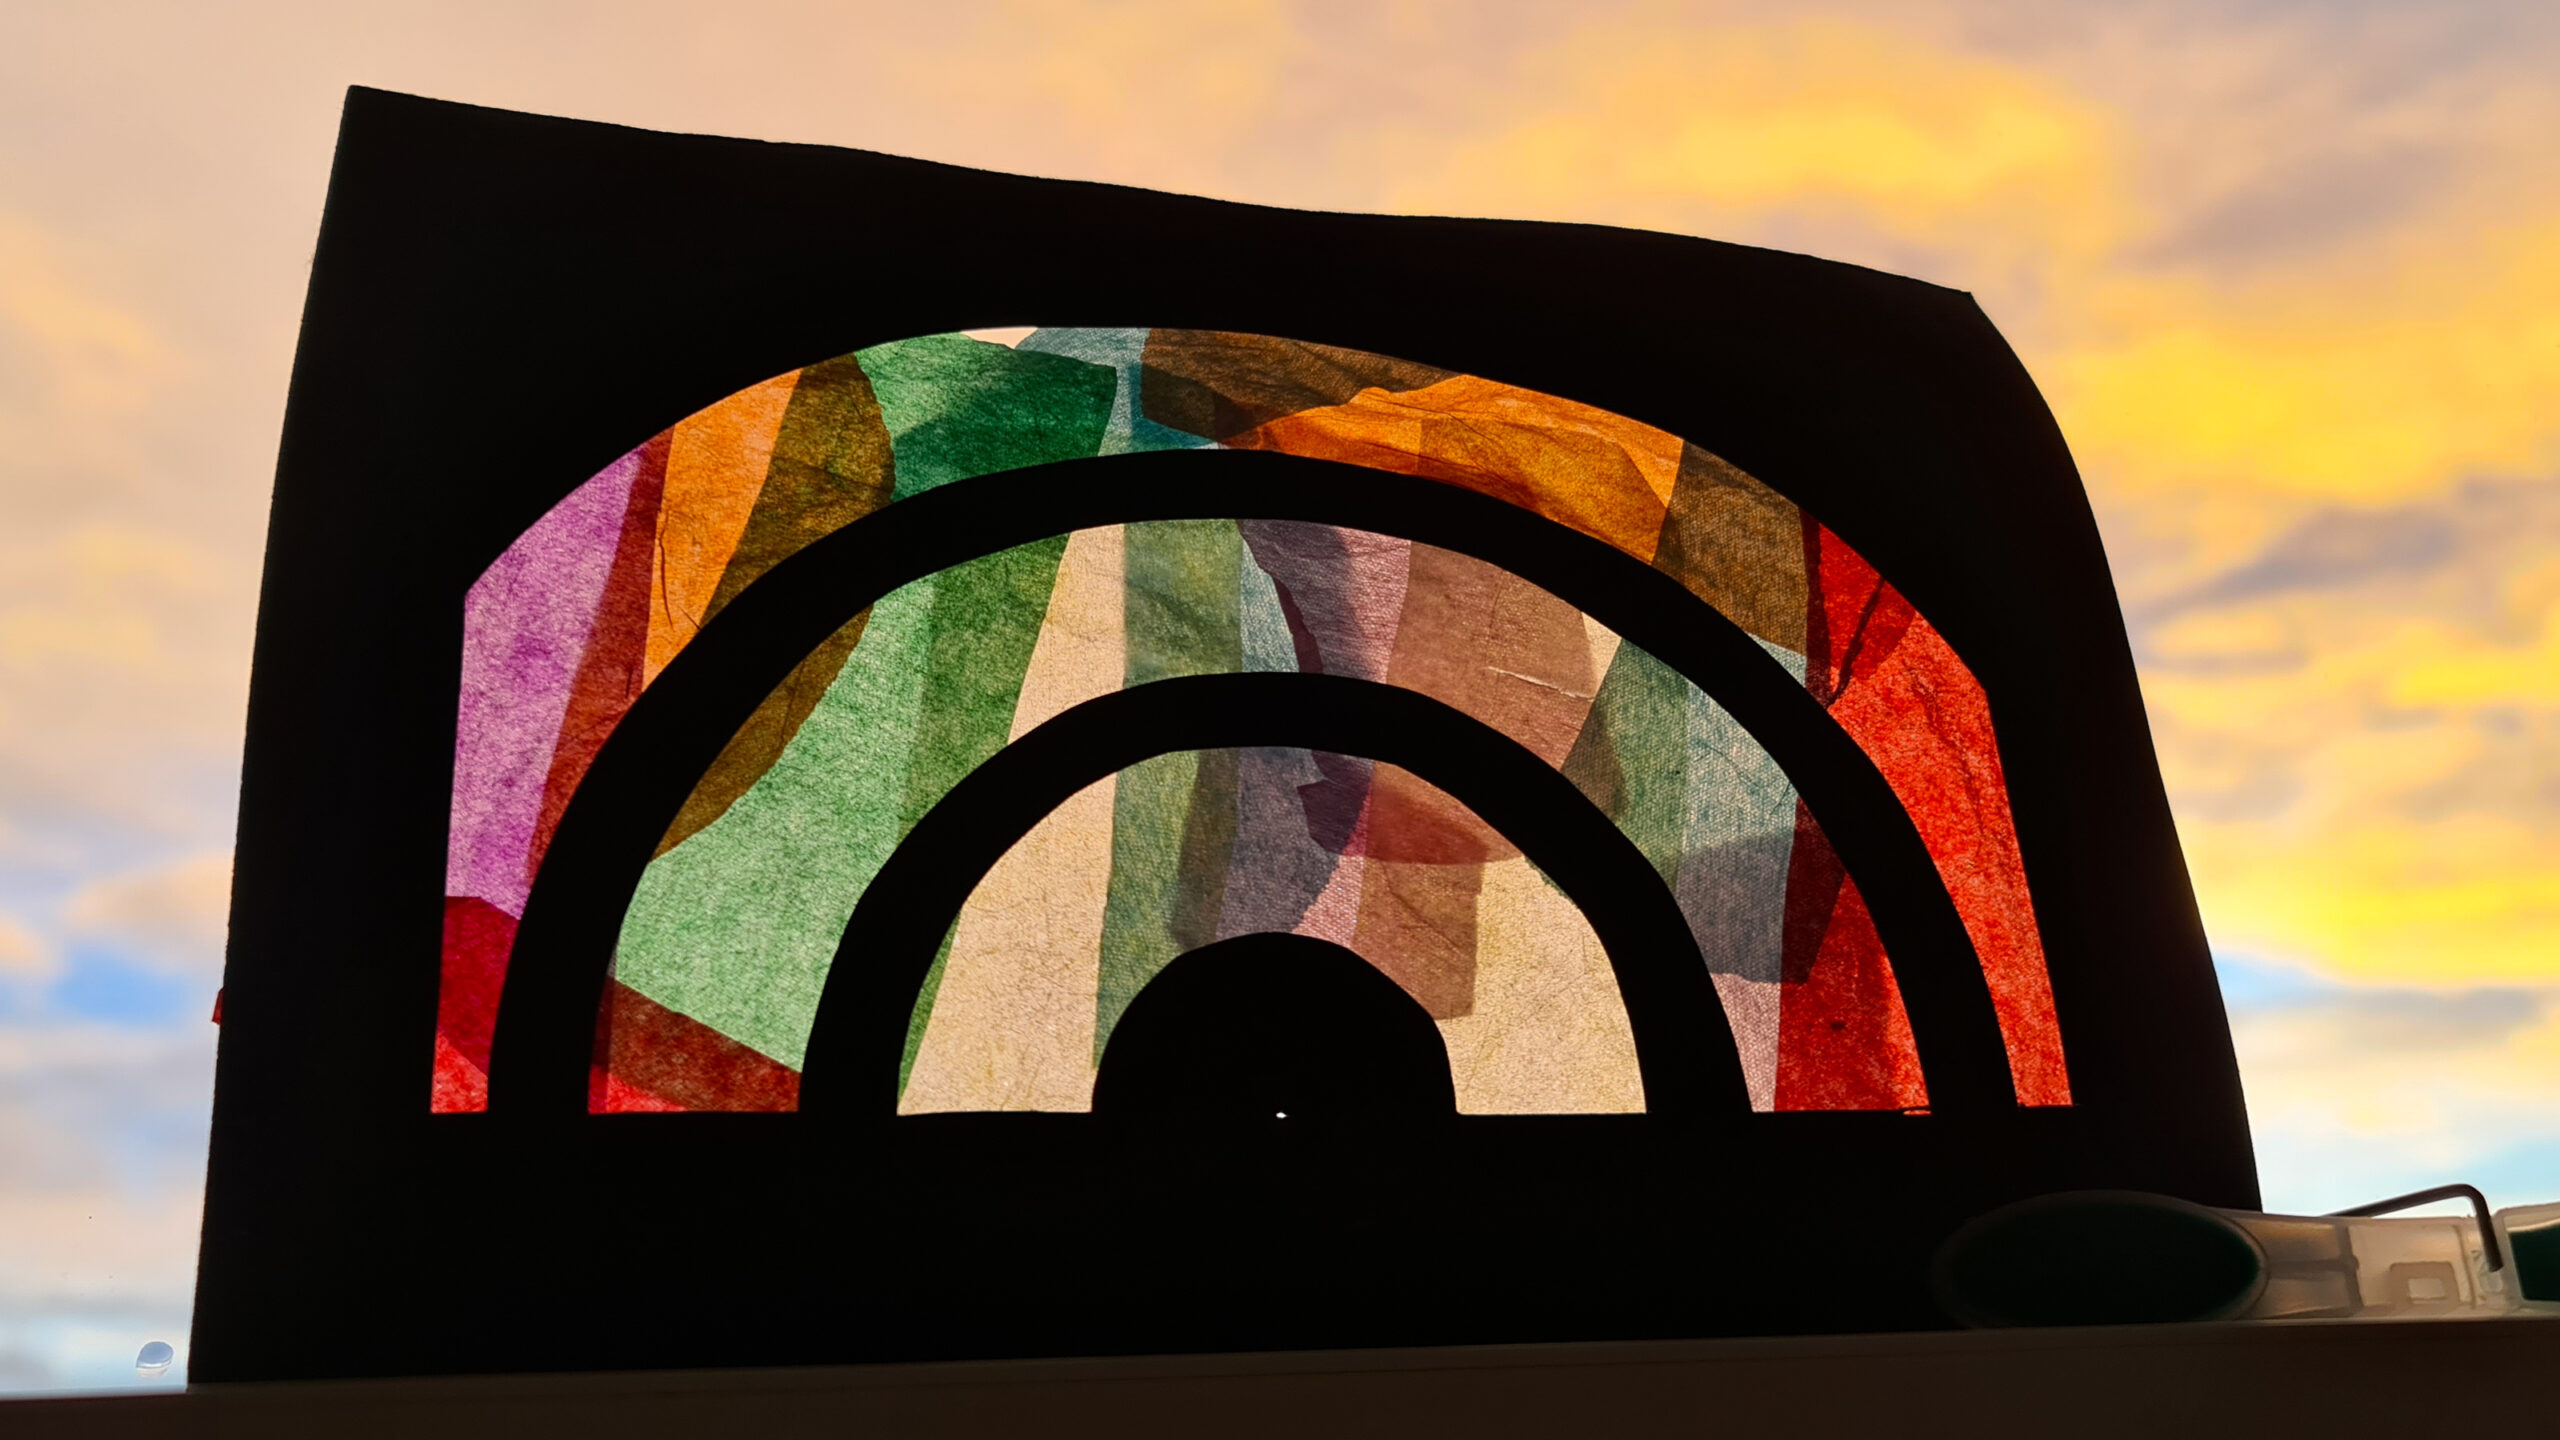 Stained glass rainbows (and DIY compass for drawing circles)